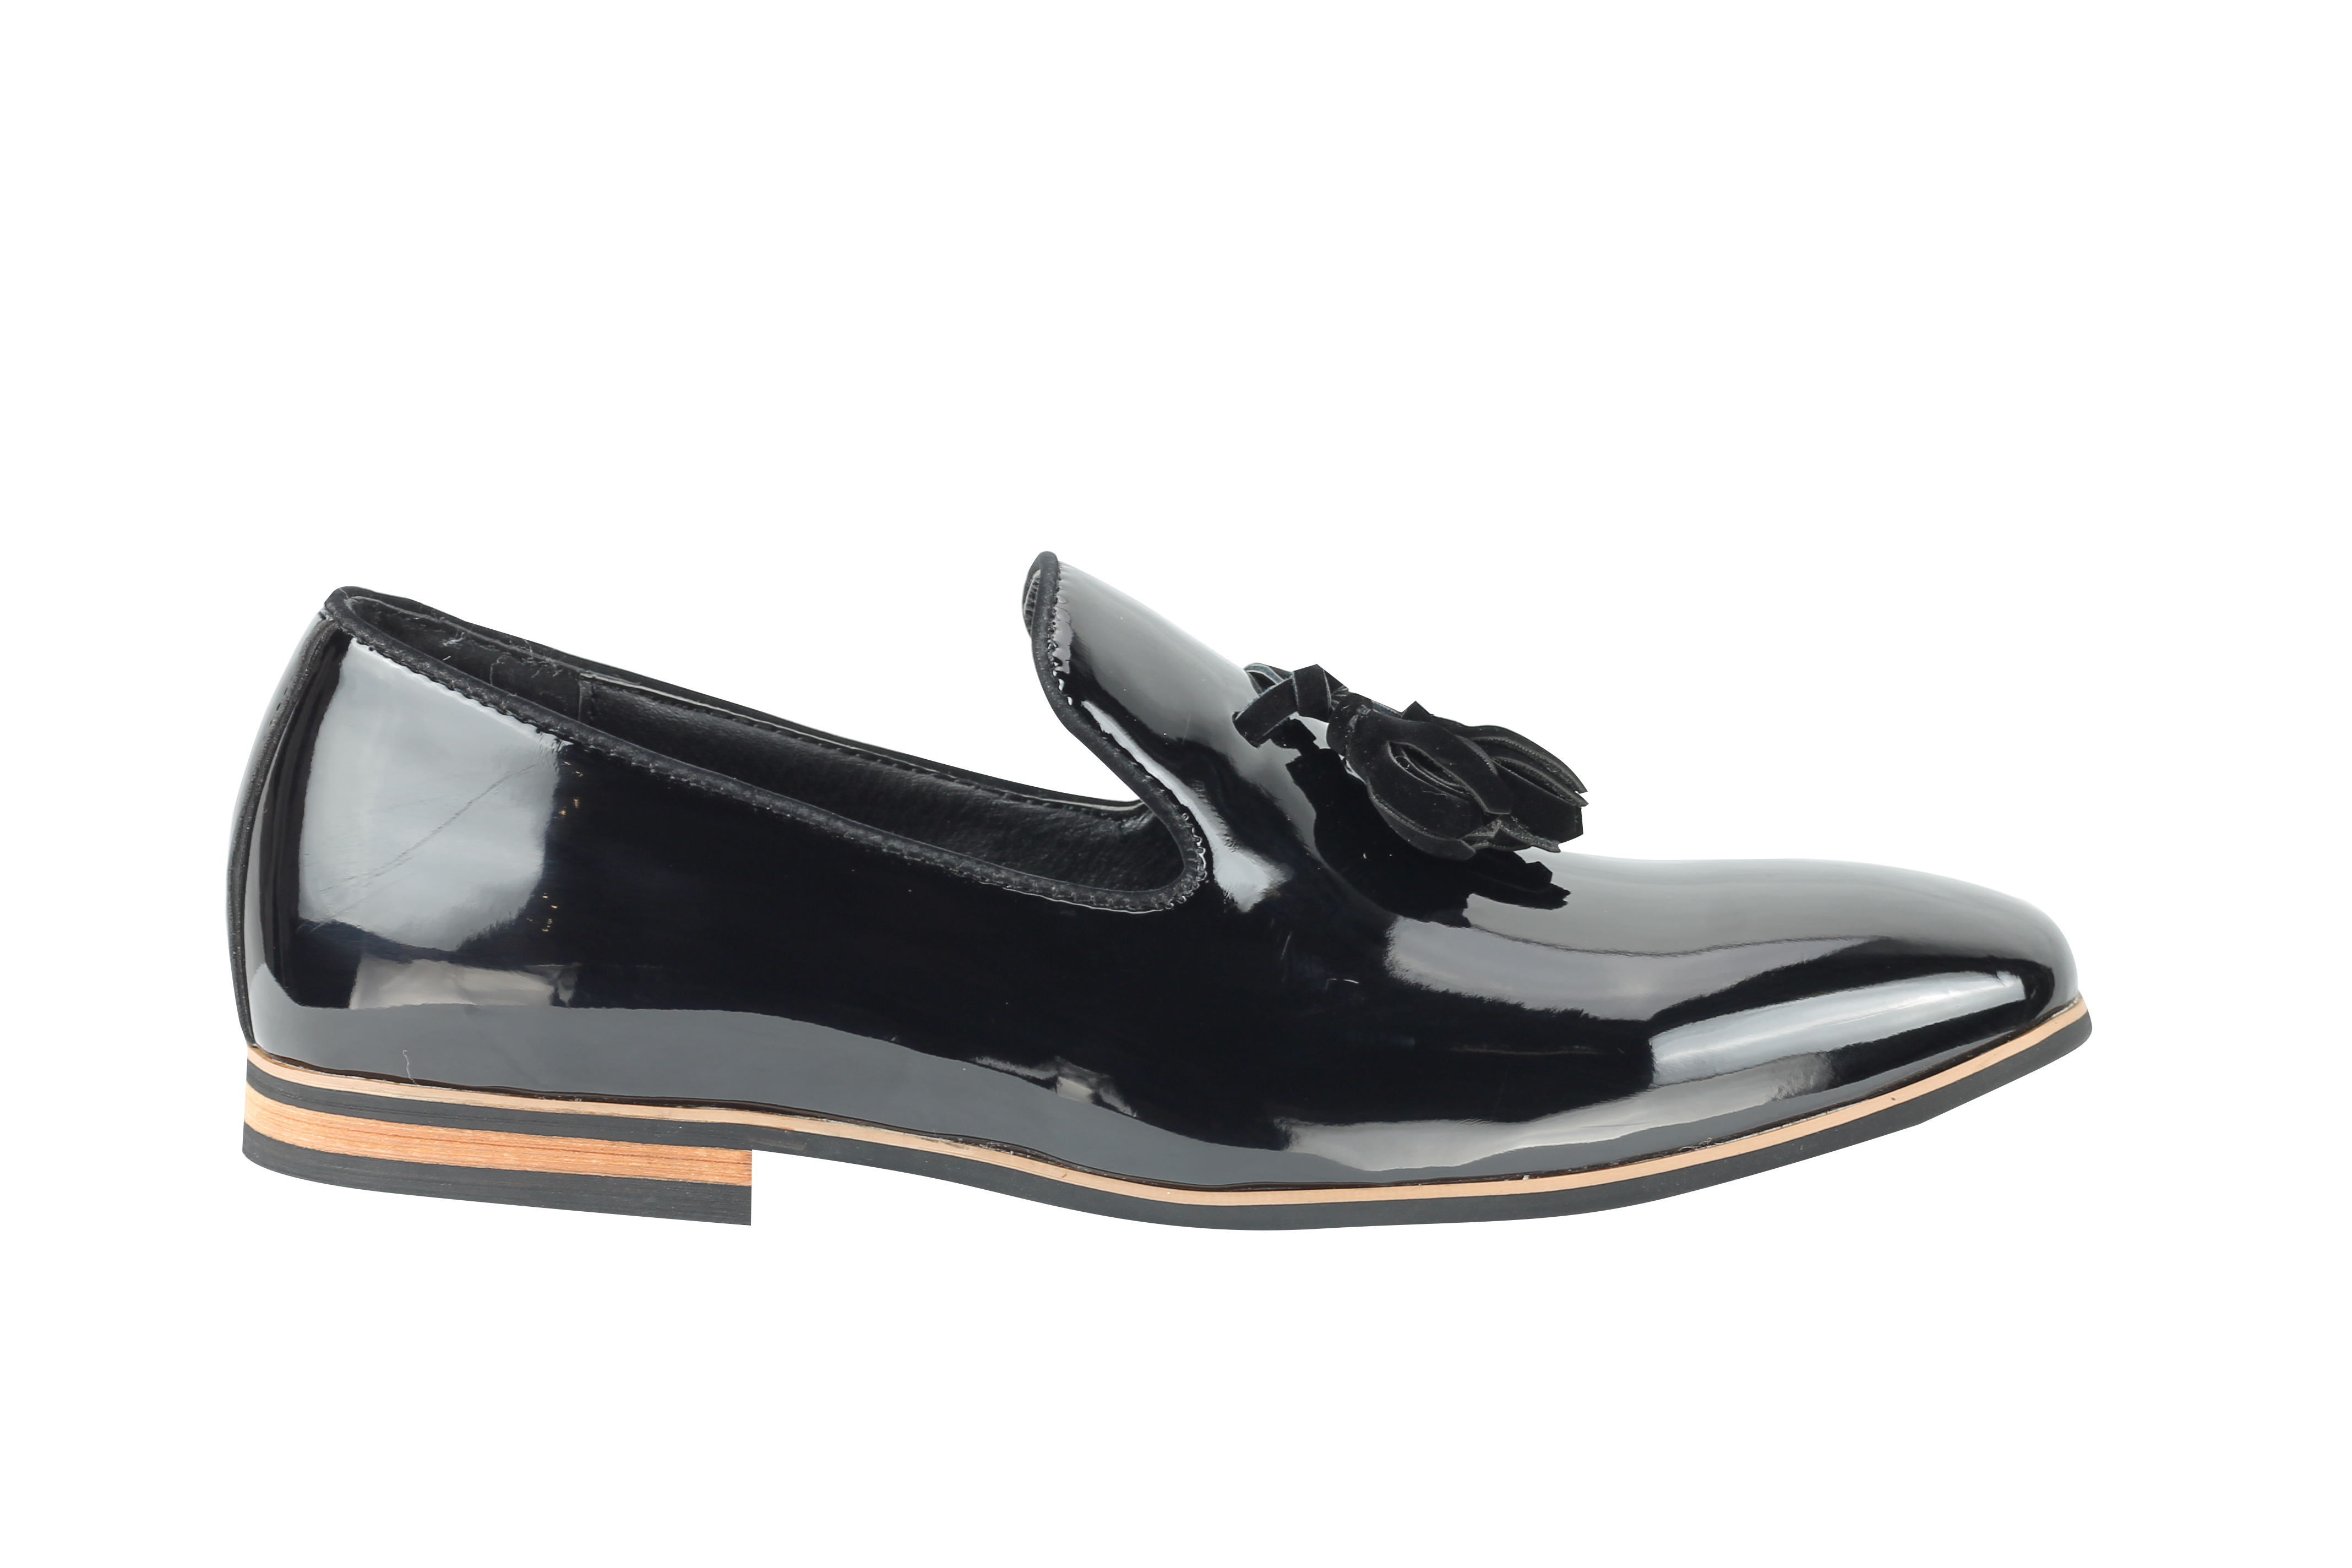 6a2f46ff99 Details about Mens Tassel Loafers Shiny Patent Leather Line Slip on Smart  Casual Driving Shoes